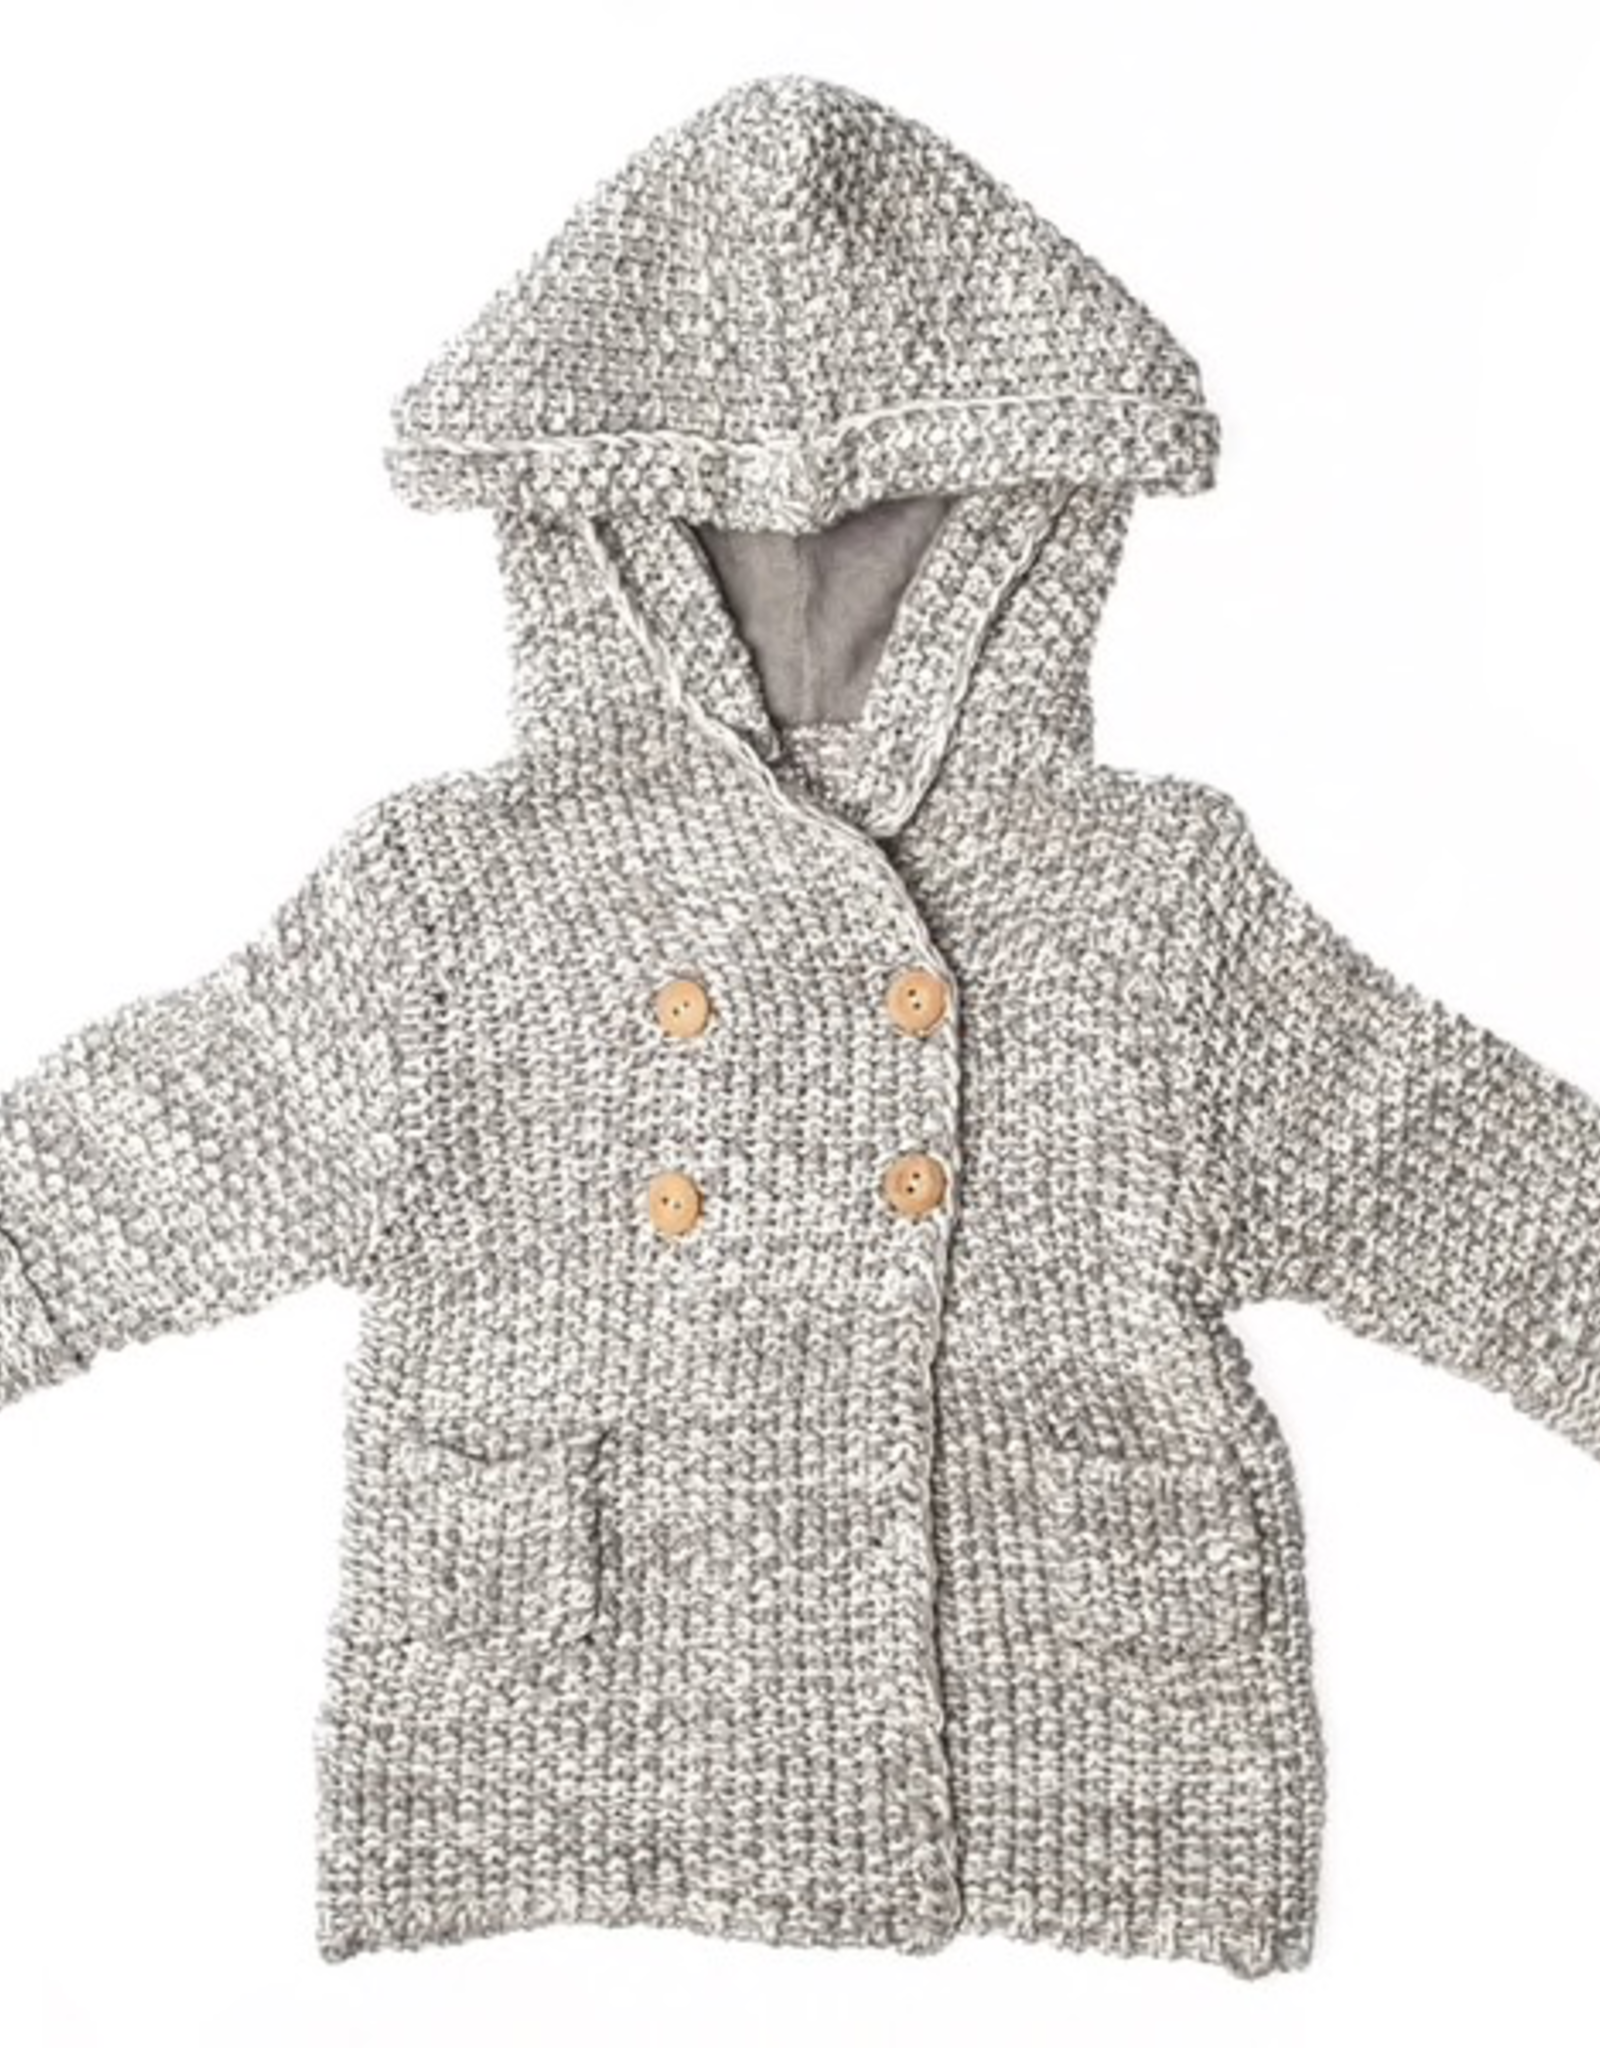 Beba Bean Crochet Hoodie For Baby Steveston Village Maternity